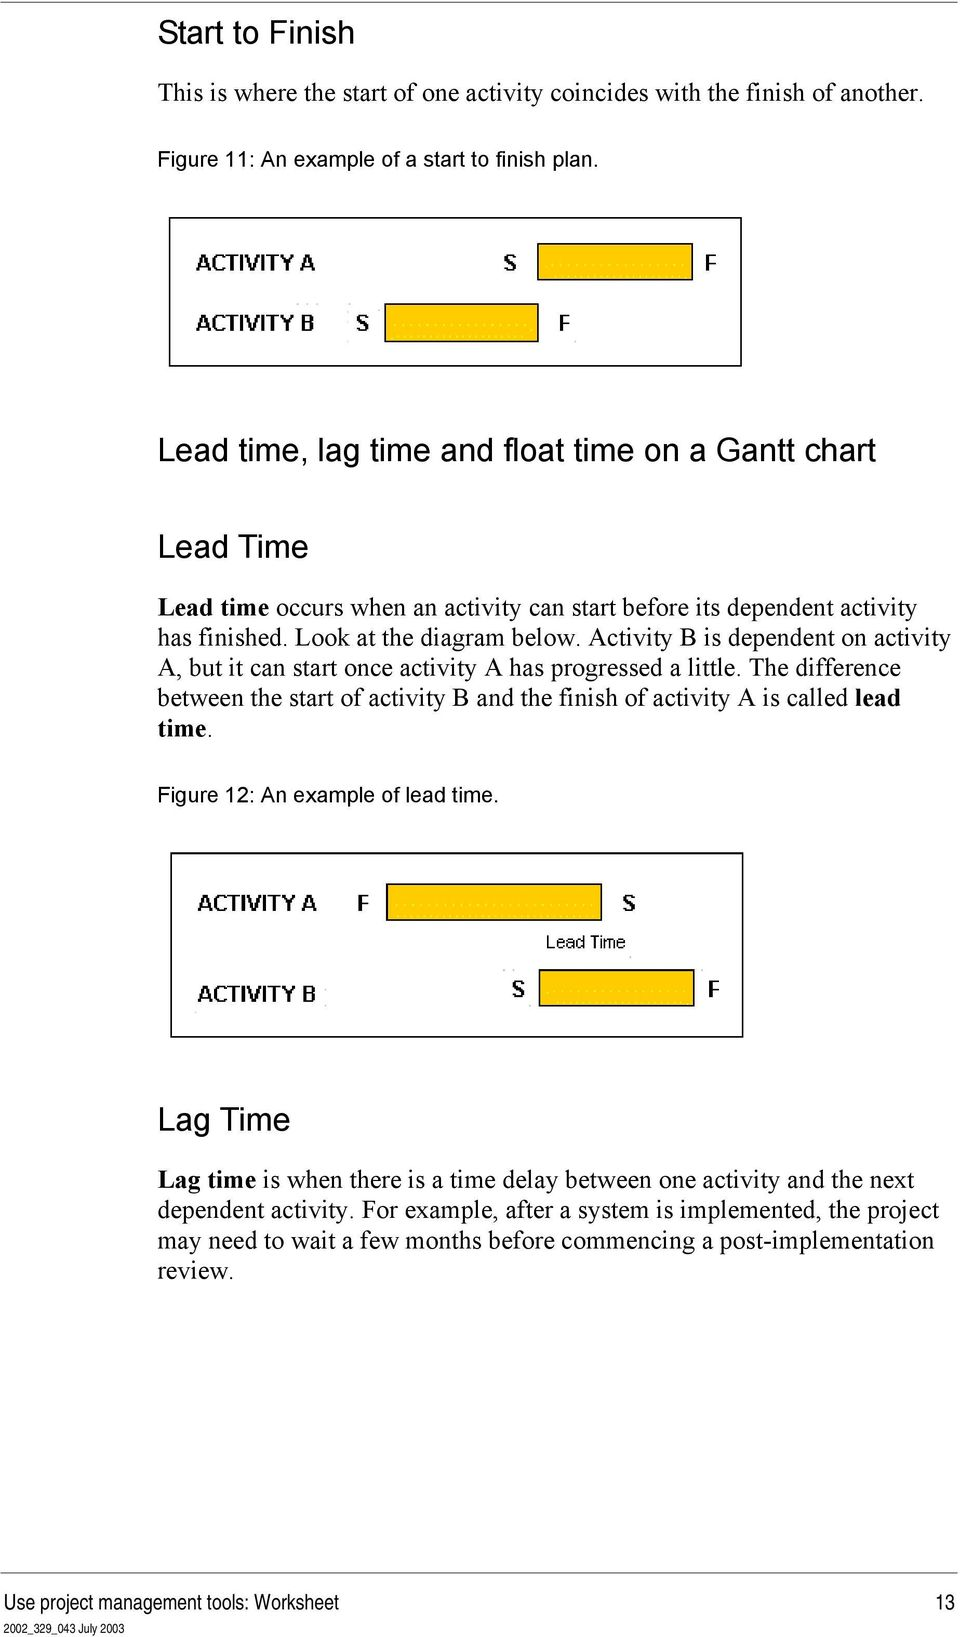 Activity B is dependent on activity A, but it can start once activity A has progressed a little. The difference between the start of activity B and the finish of activity A is called lead time.